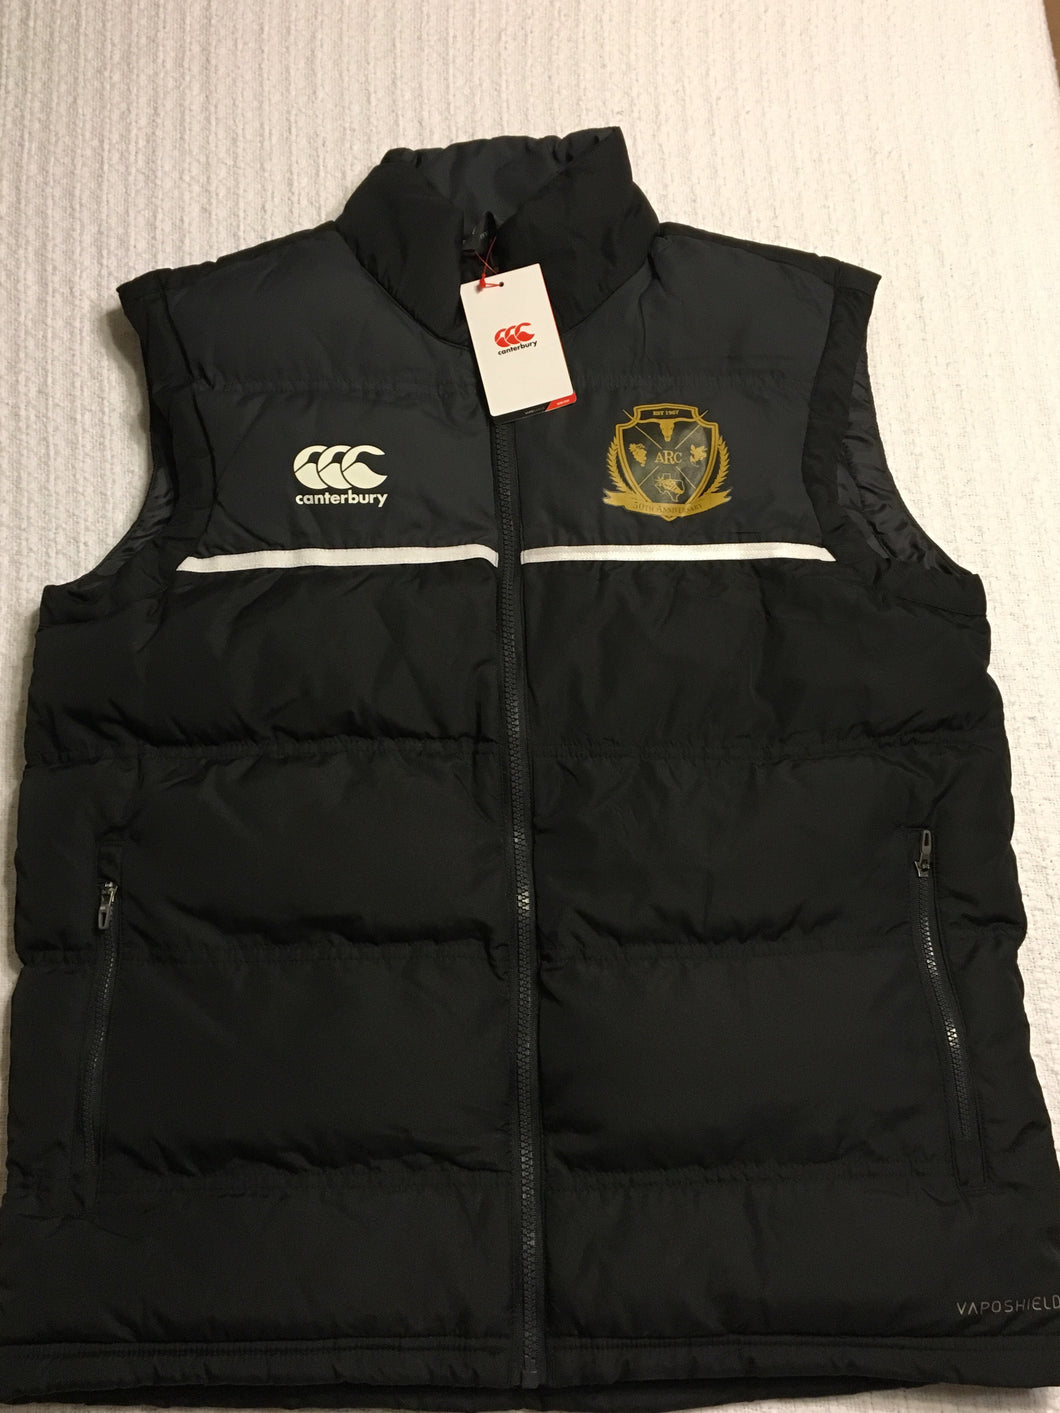 Black Canterbury 50th Anniversary Gilet (Puffy Vest)